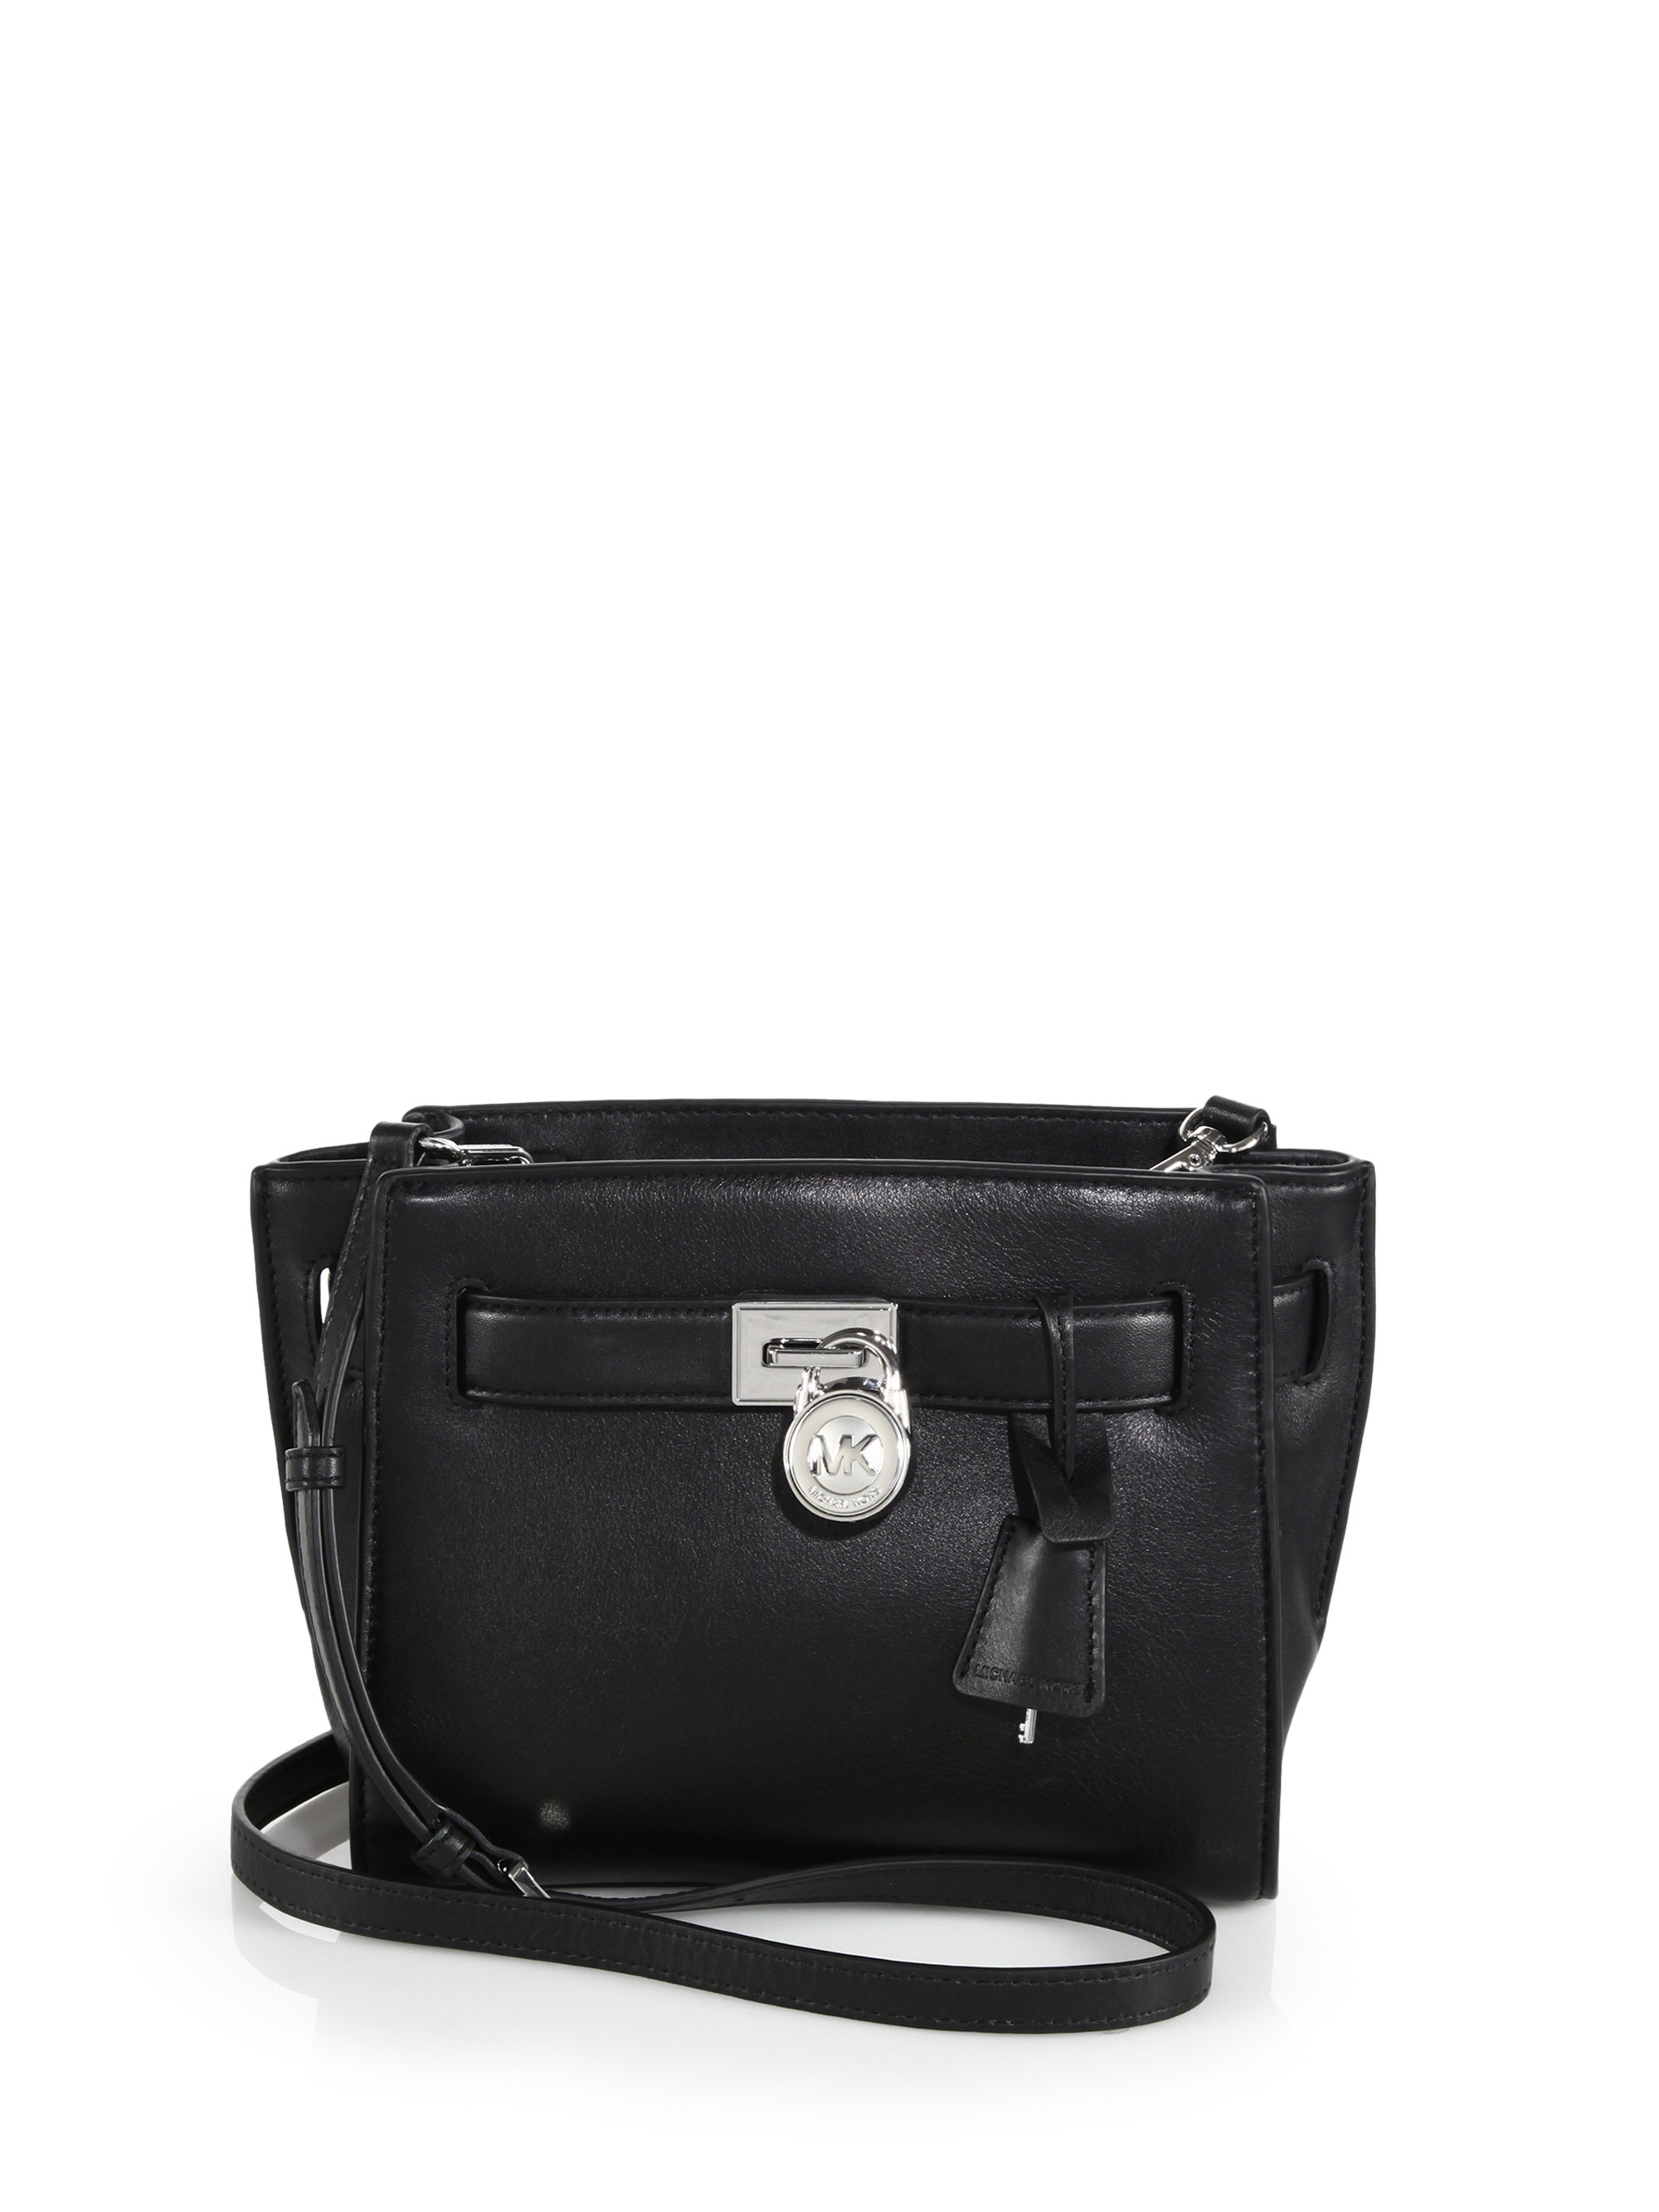 ce0aff3c64cb Gallery. Previously sold at: Saks Fifth Avenue · Women's Michael By Michael  Kors Hamilton